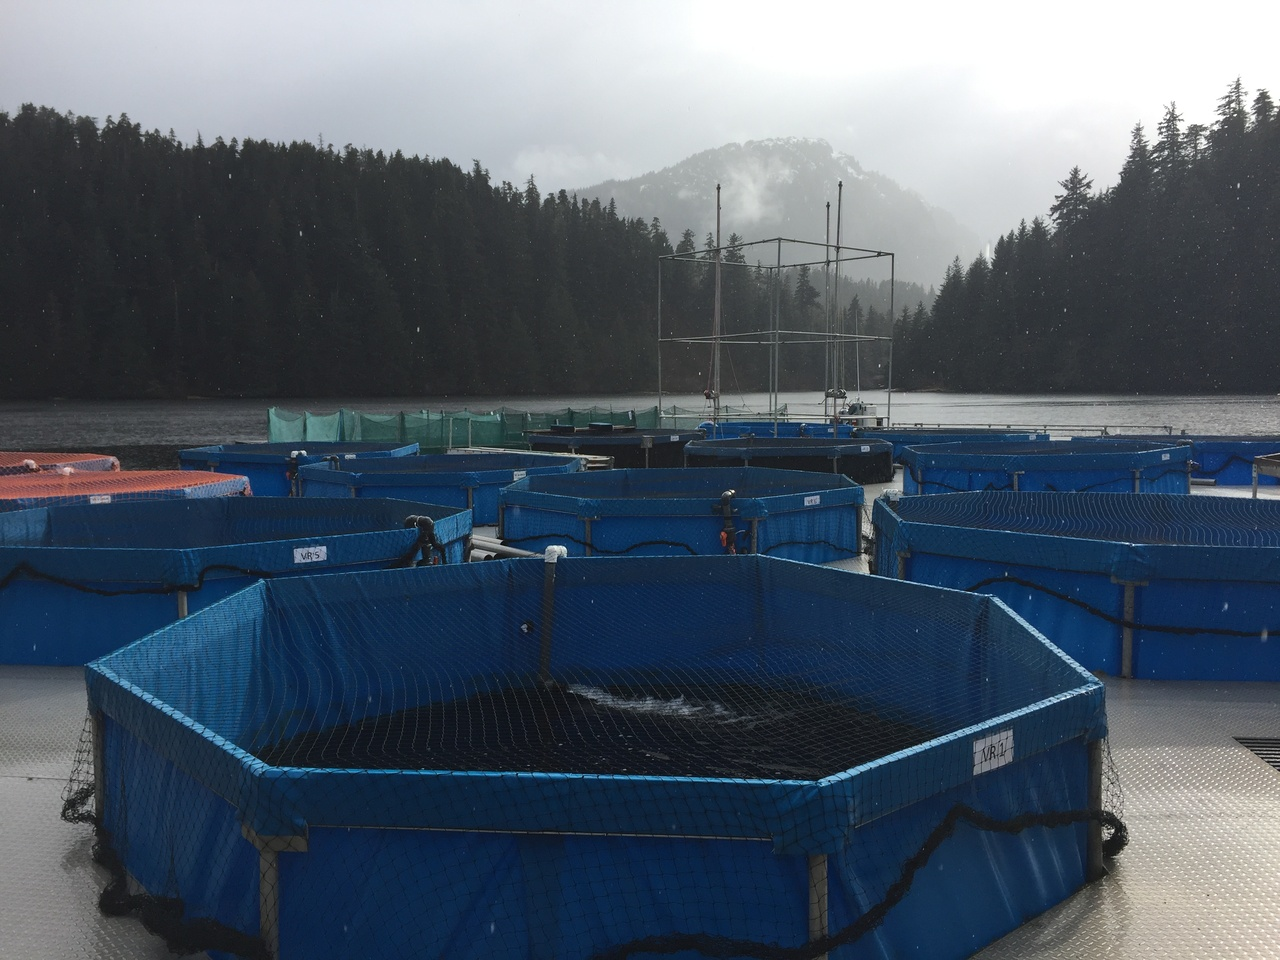 Vertical raceways, which hold the 215,000 Chinook salmon that will be observed for the study.